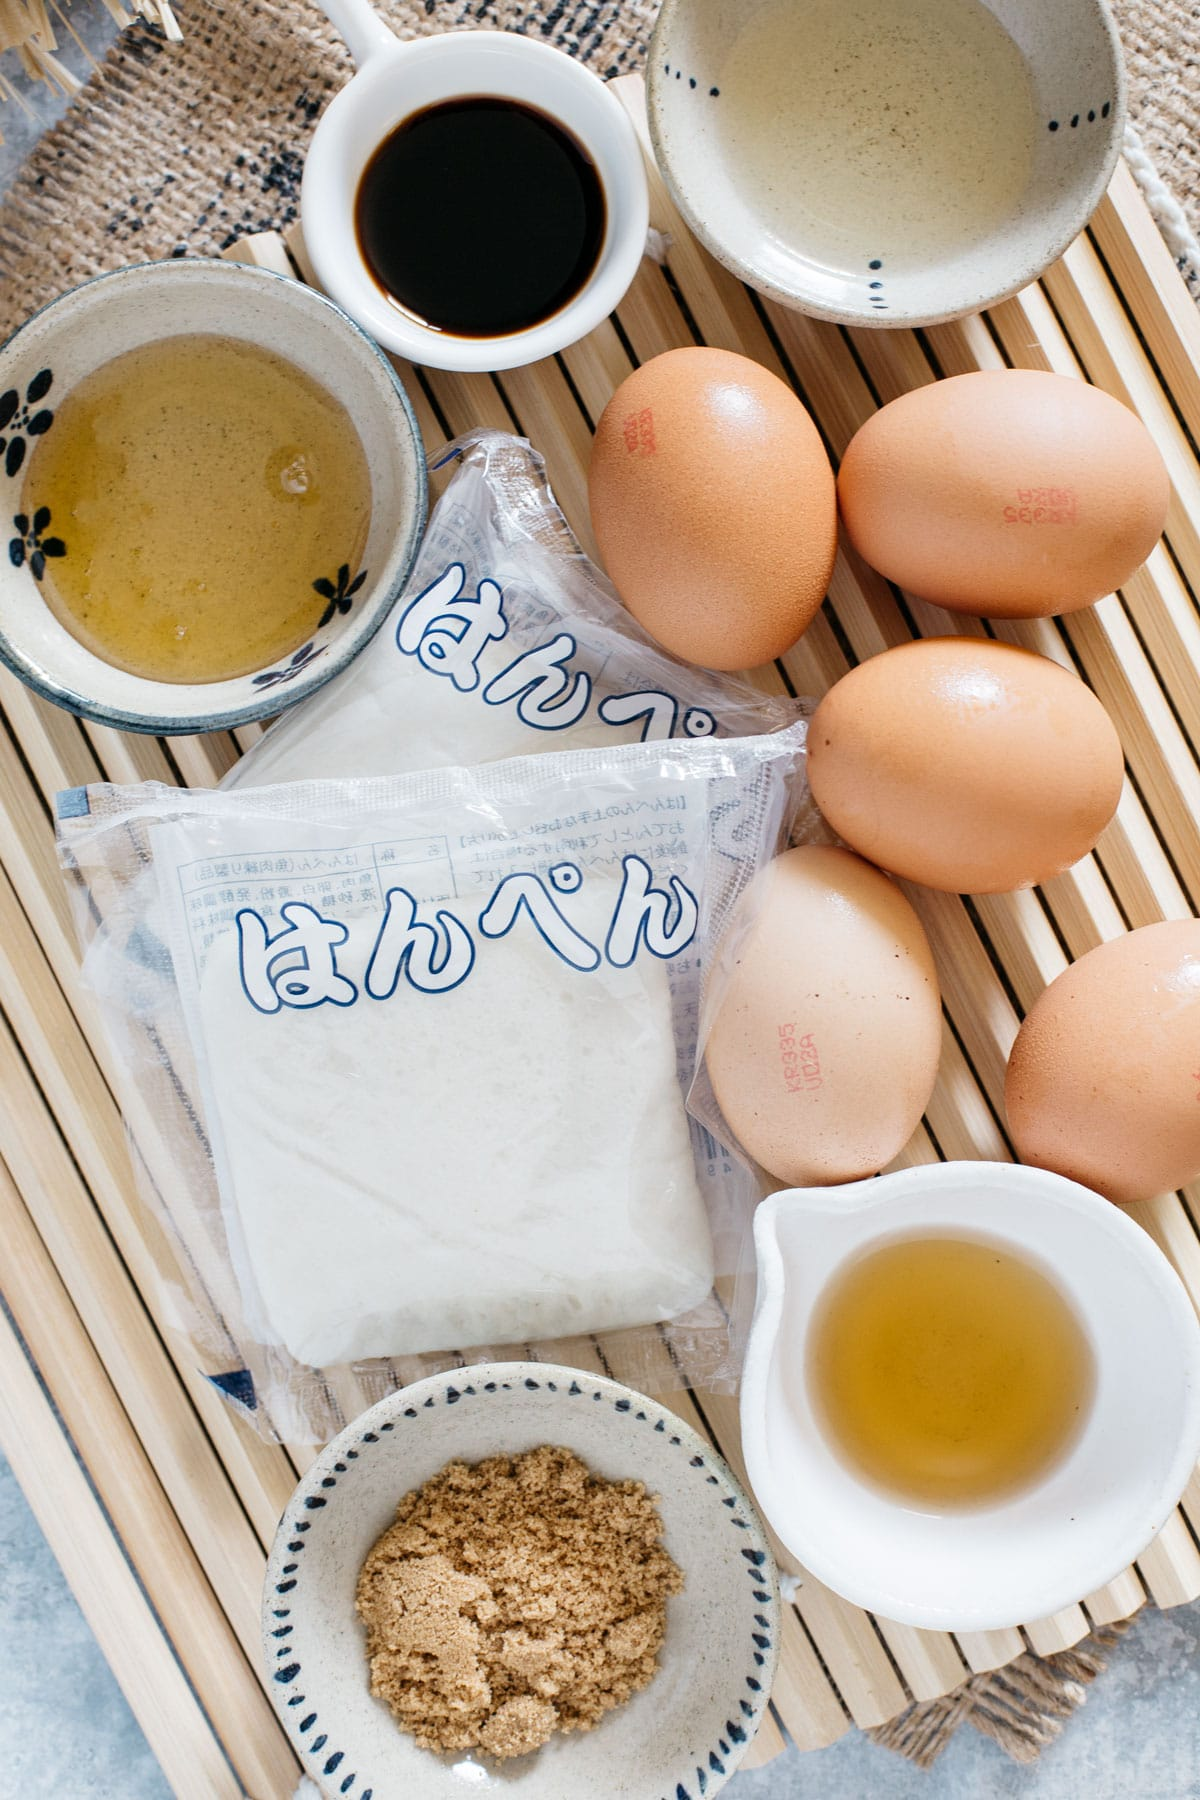 Japanese rolled omelette ingredients, 5 eggs, fish cakes, condiments on a bamboo mat